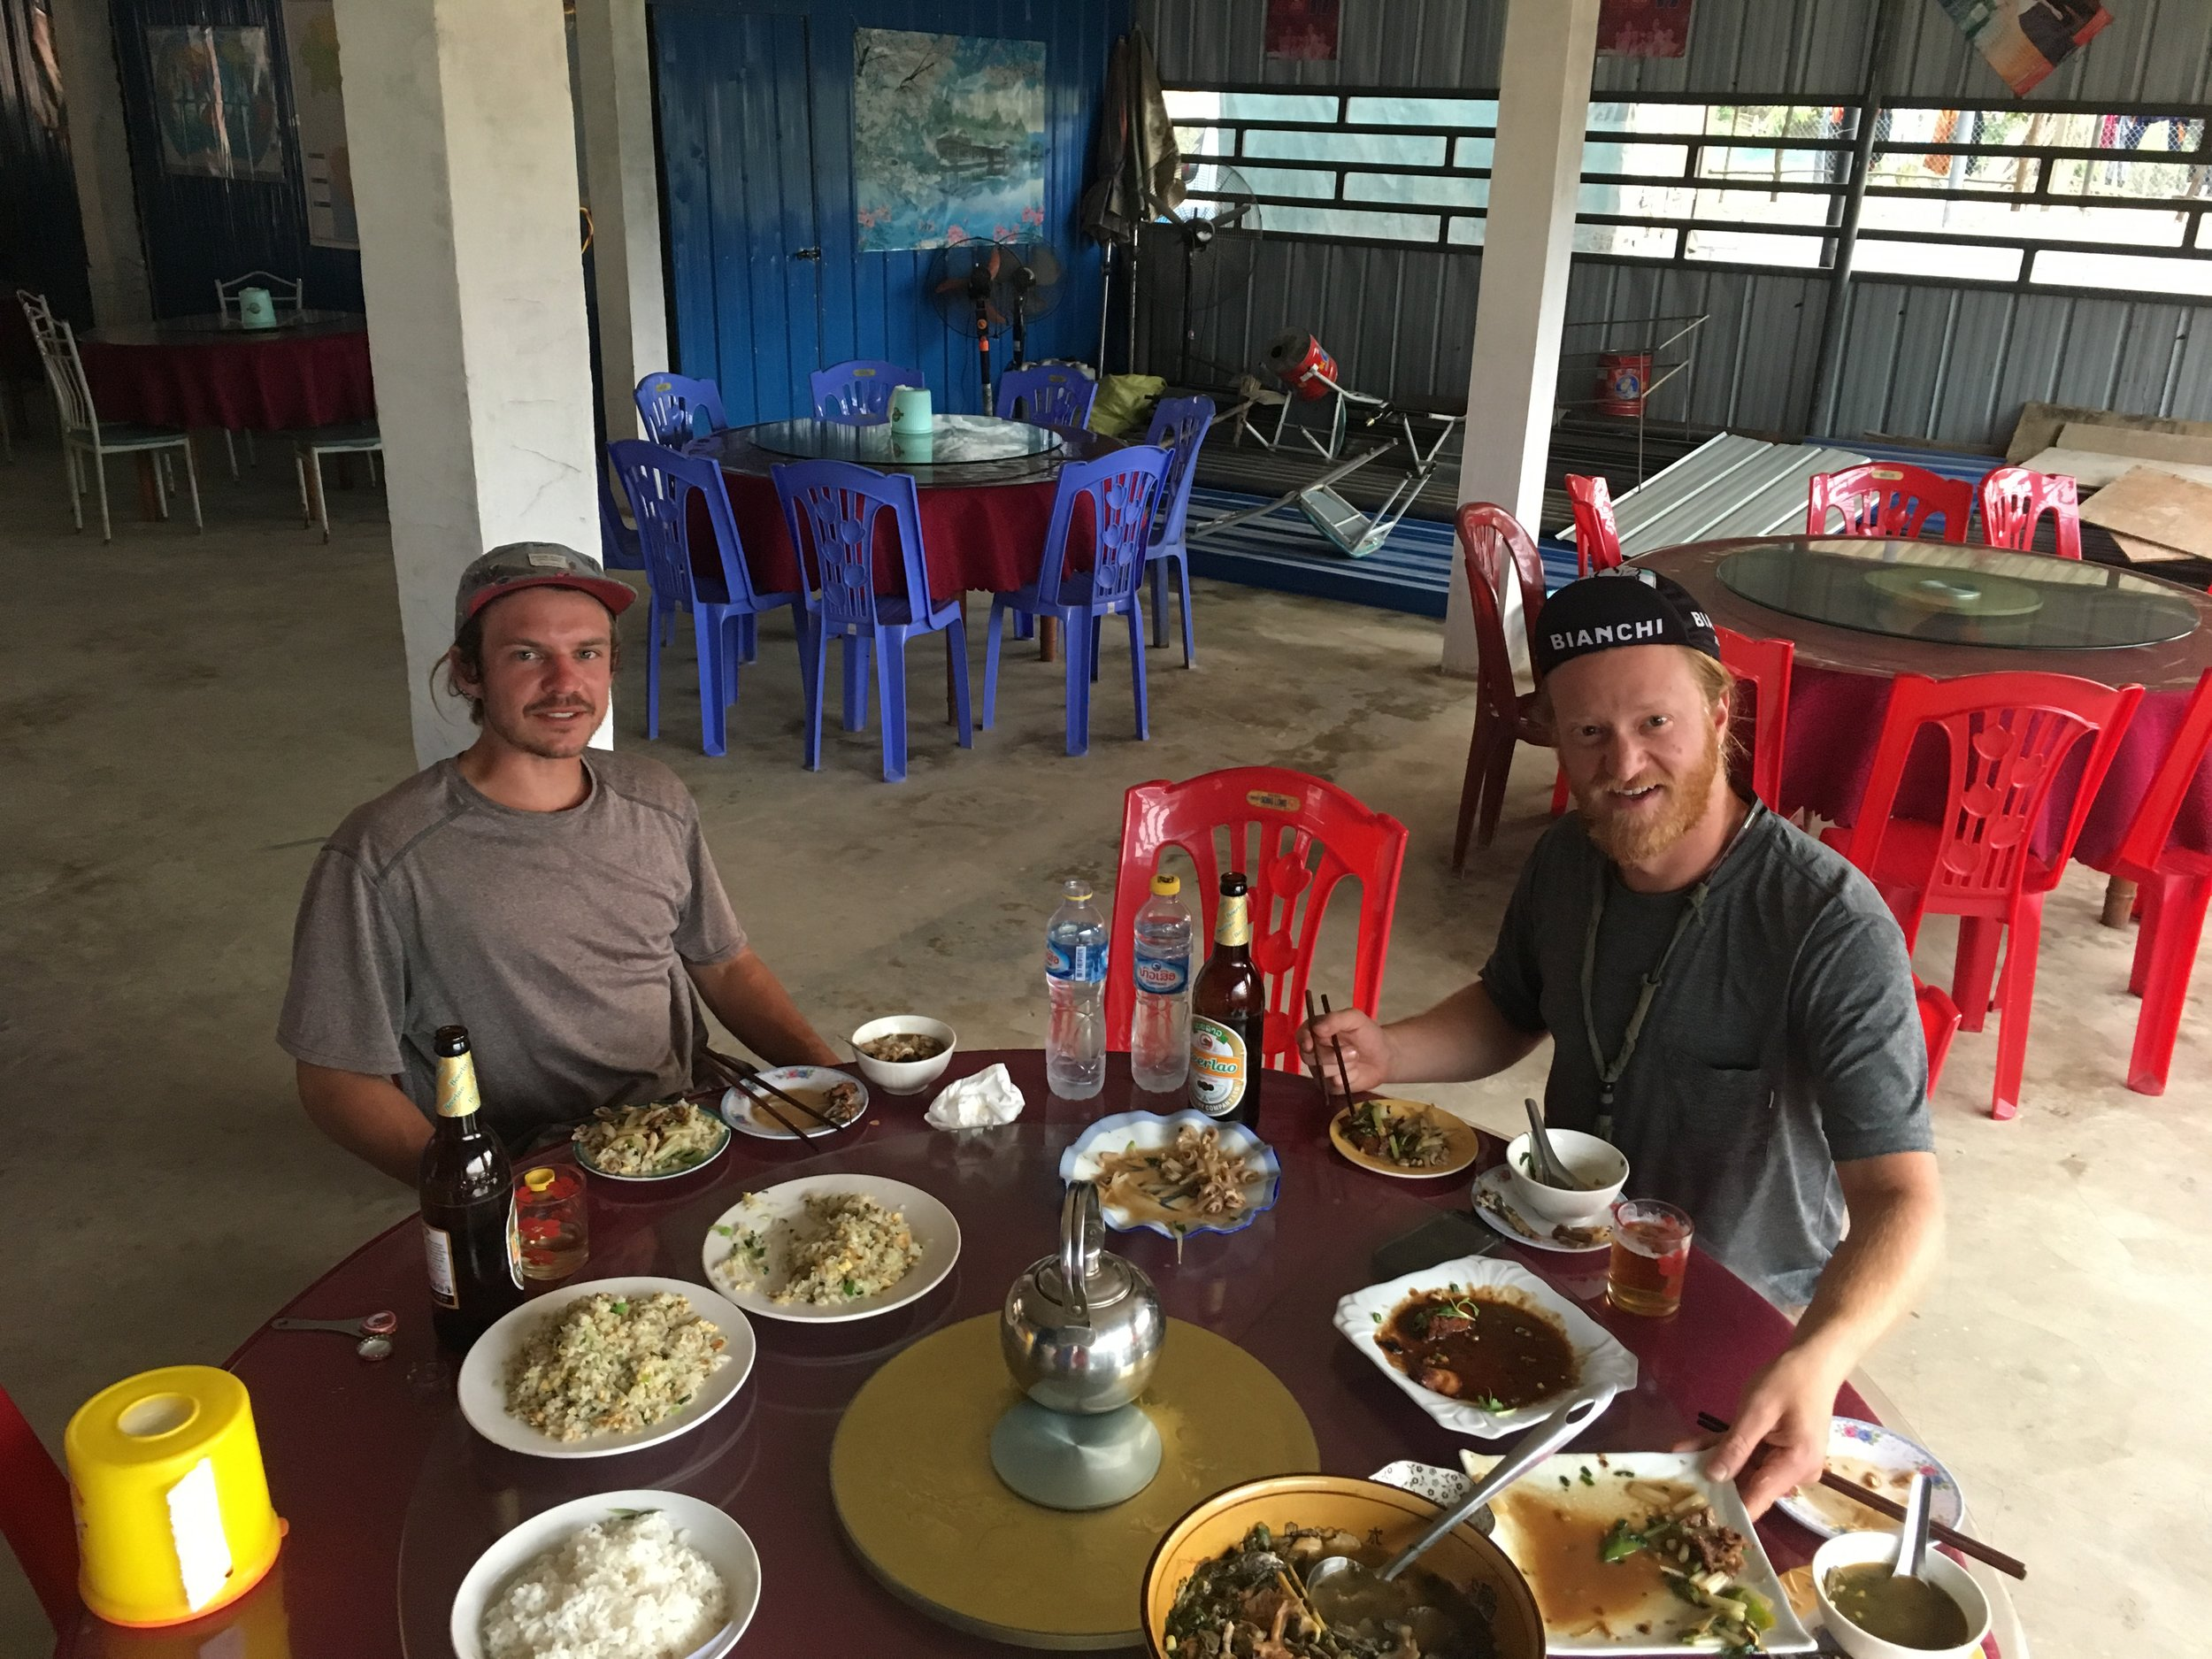 Our excellent, but very expensive restaurant in the Muang Mai which is in the middle of nowhere.